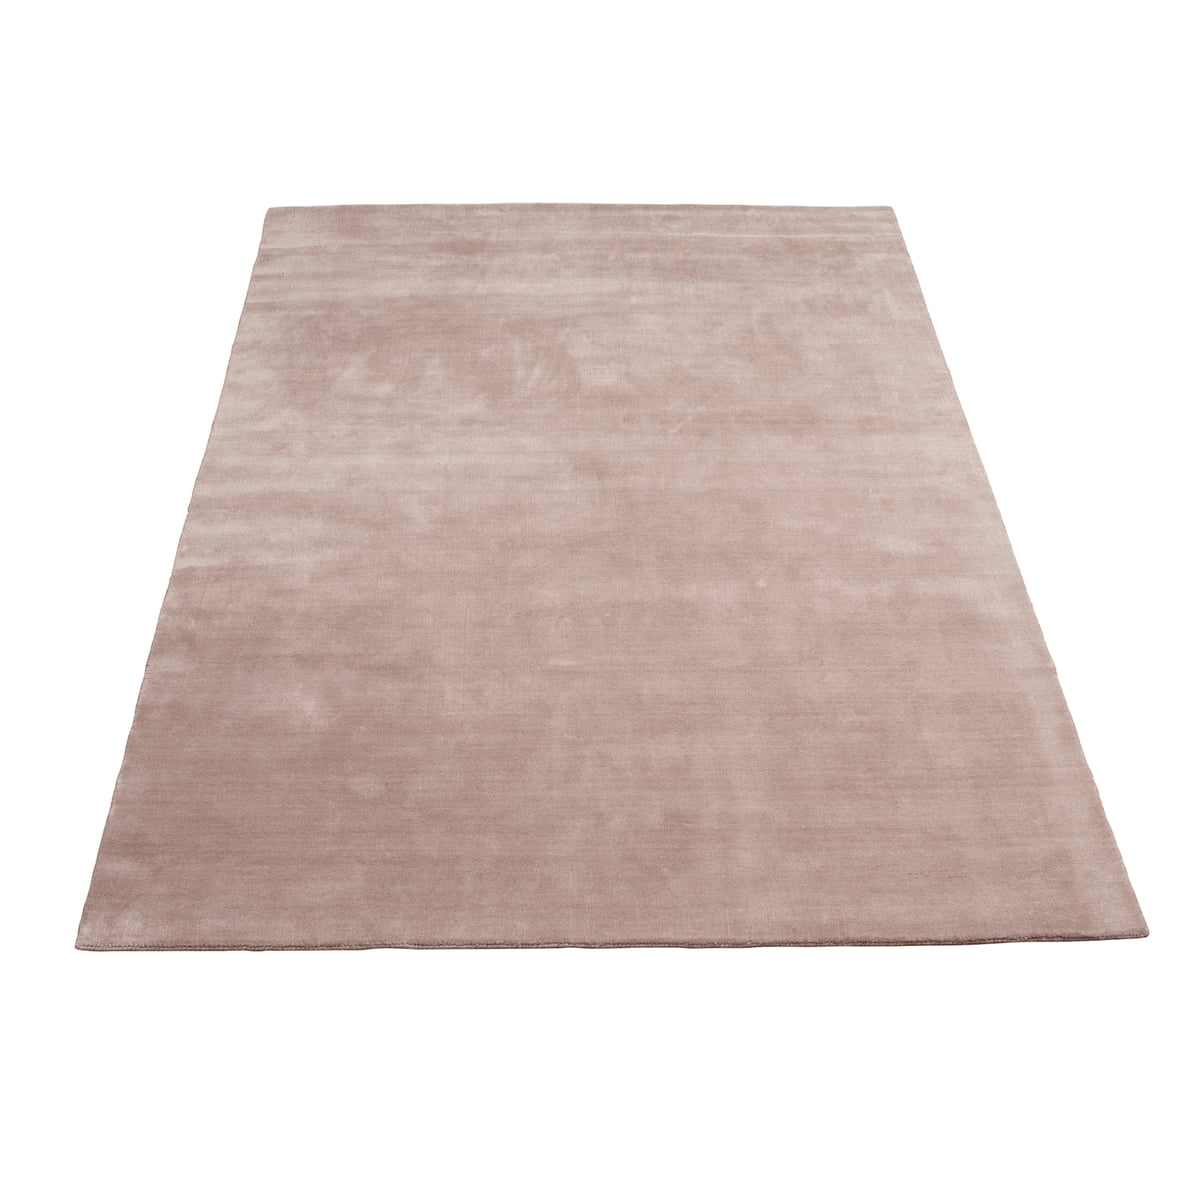 Ikea Teppich 170 X 240 Massimo Earth Bamboo Teppich 170 X 240 Cm Nougat Rose